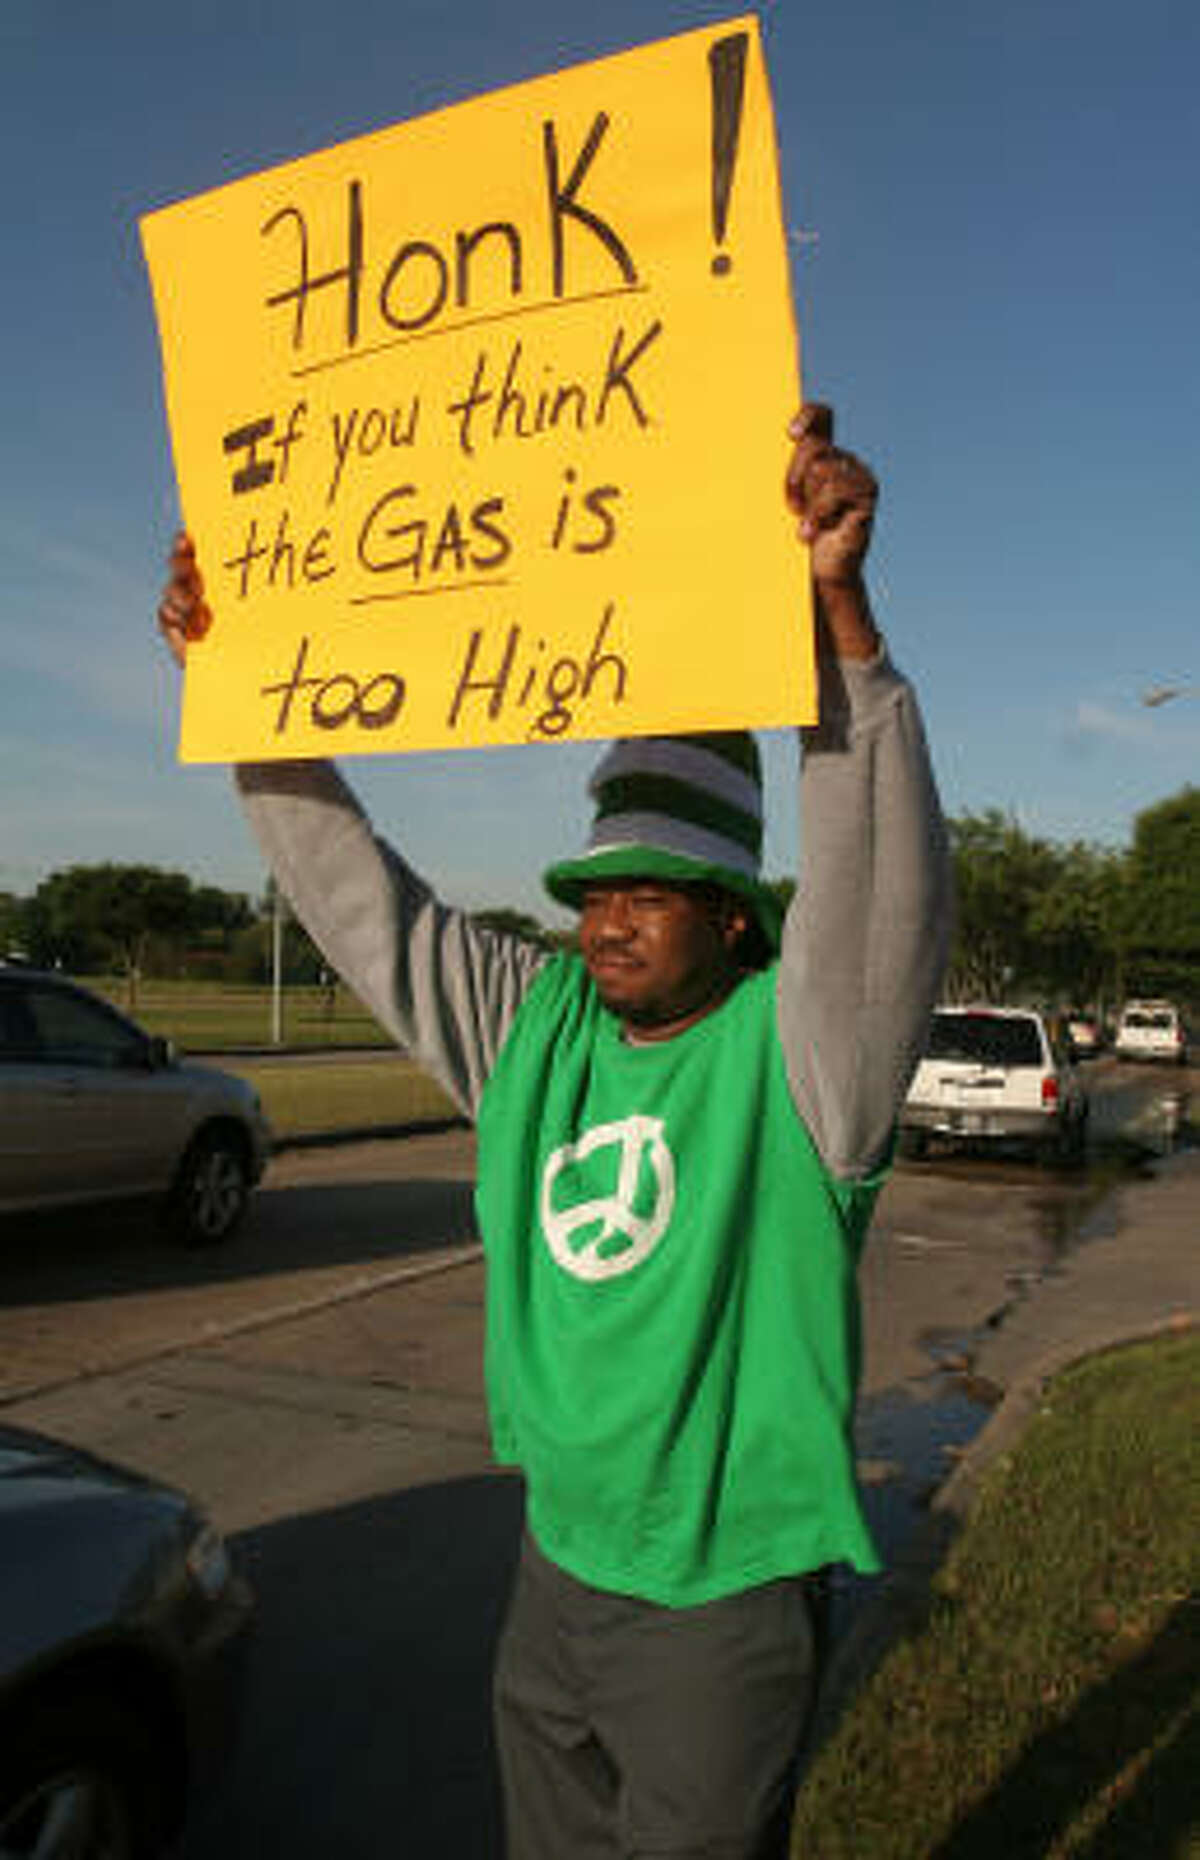 Despite drivers' increasing demand for fuel, Dylan Parker protests high gas prices outside a gas station on North Braeswood.